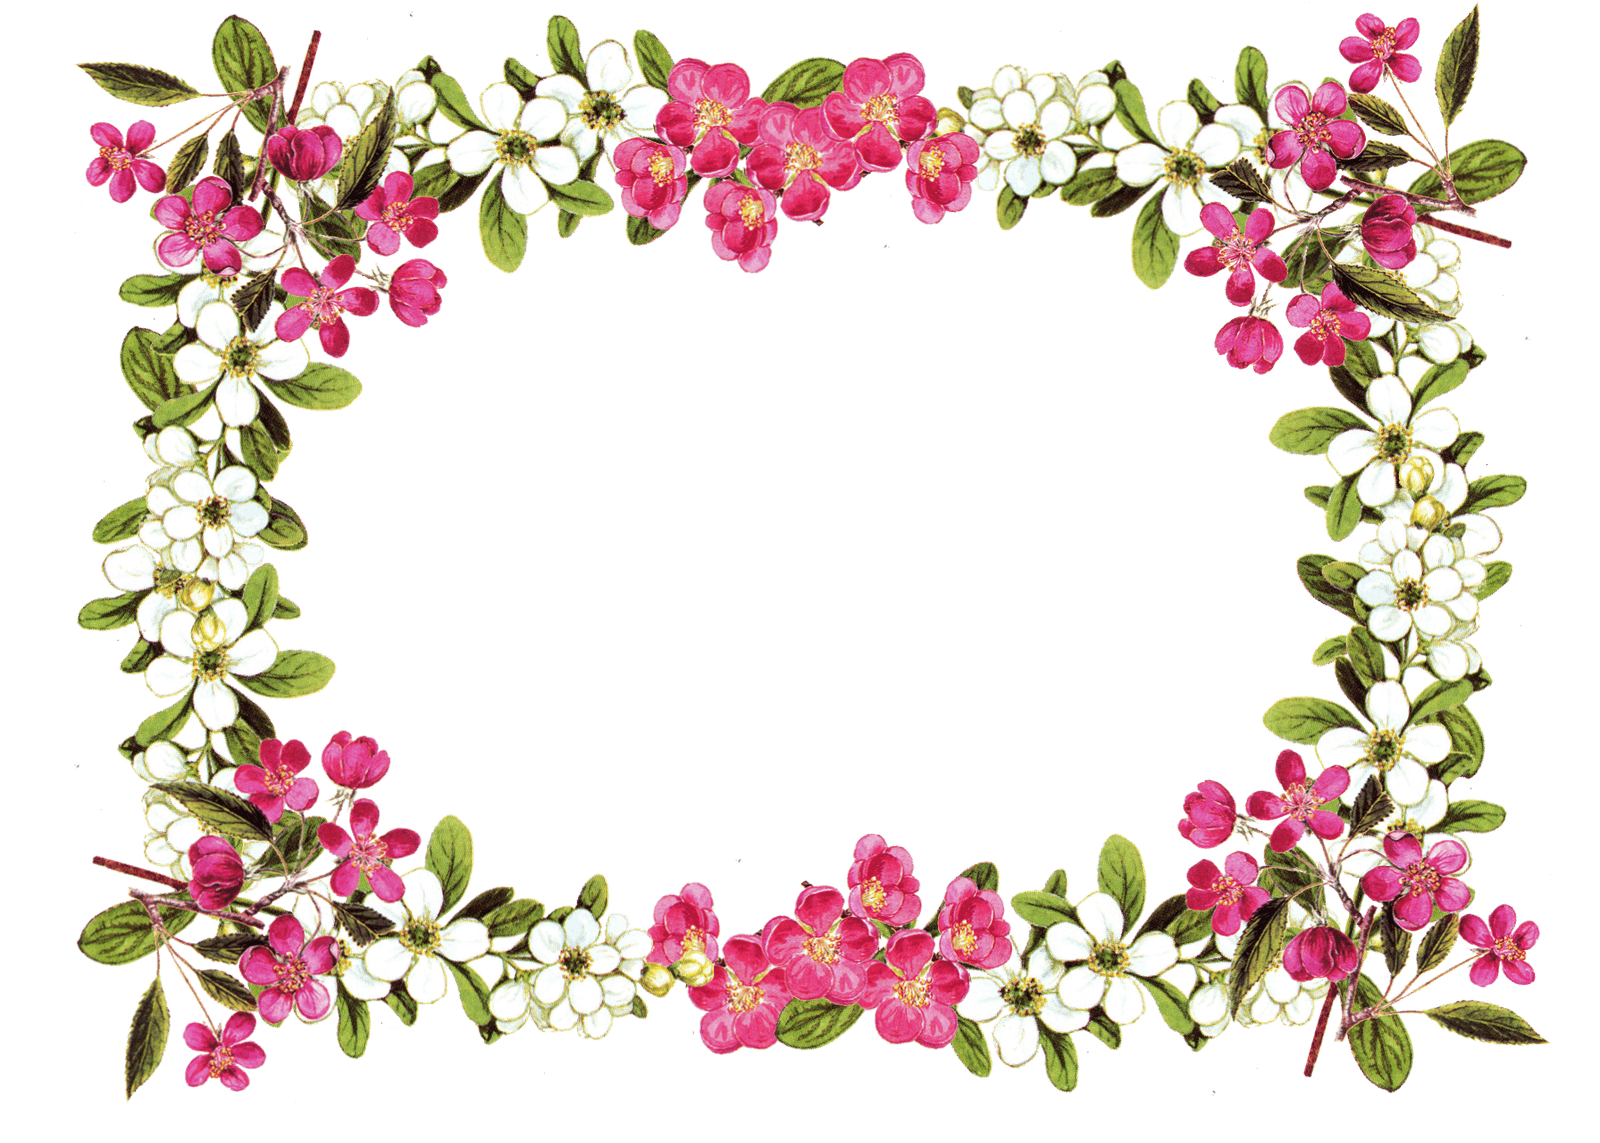 Obituary cliparts borders free. Funeral clipart simple